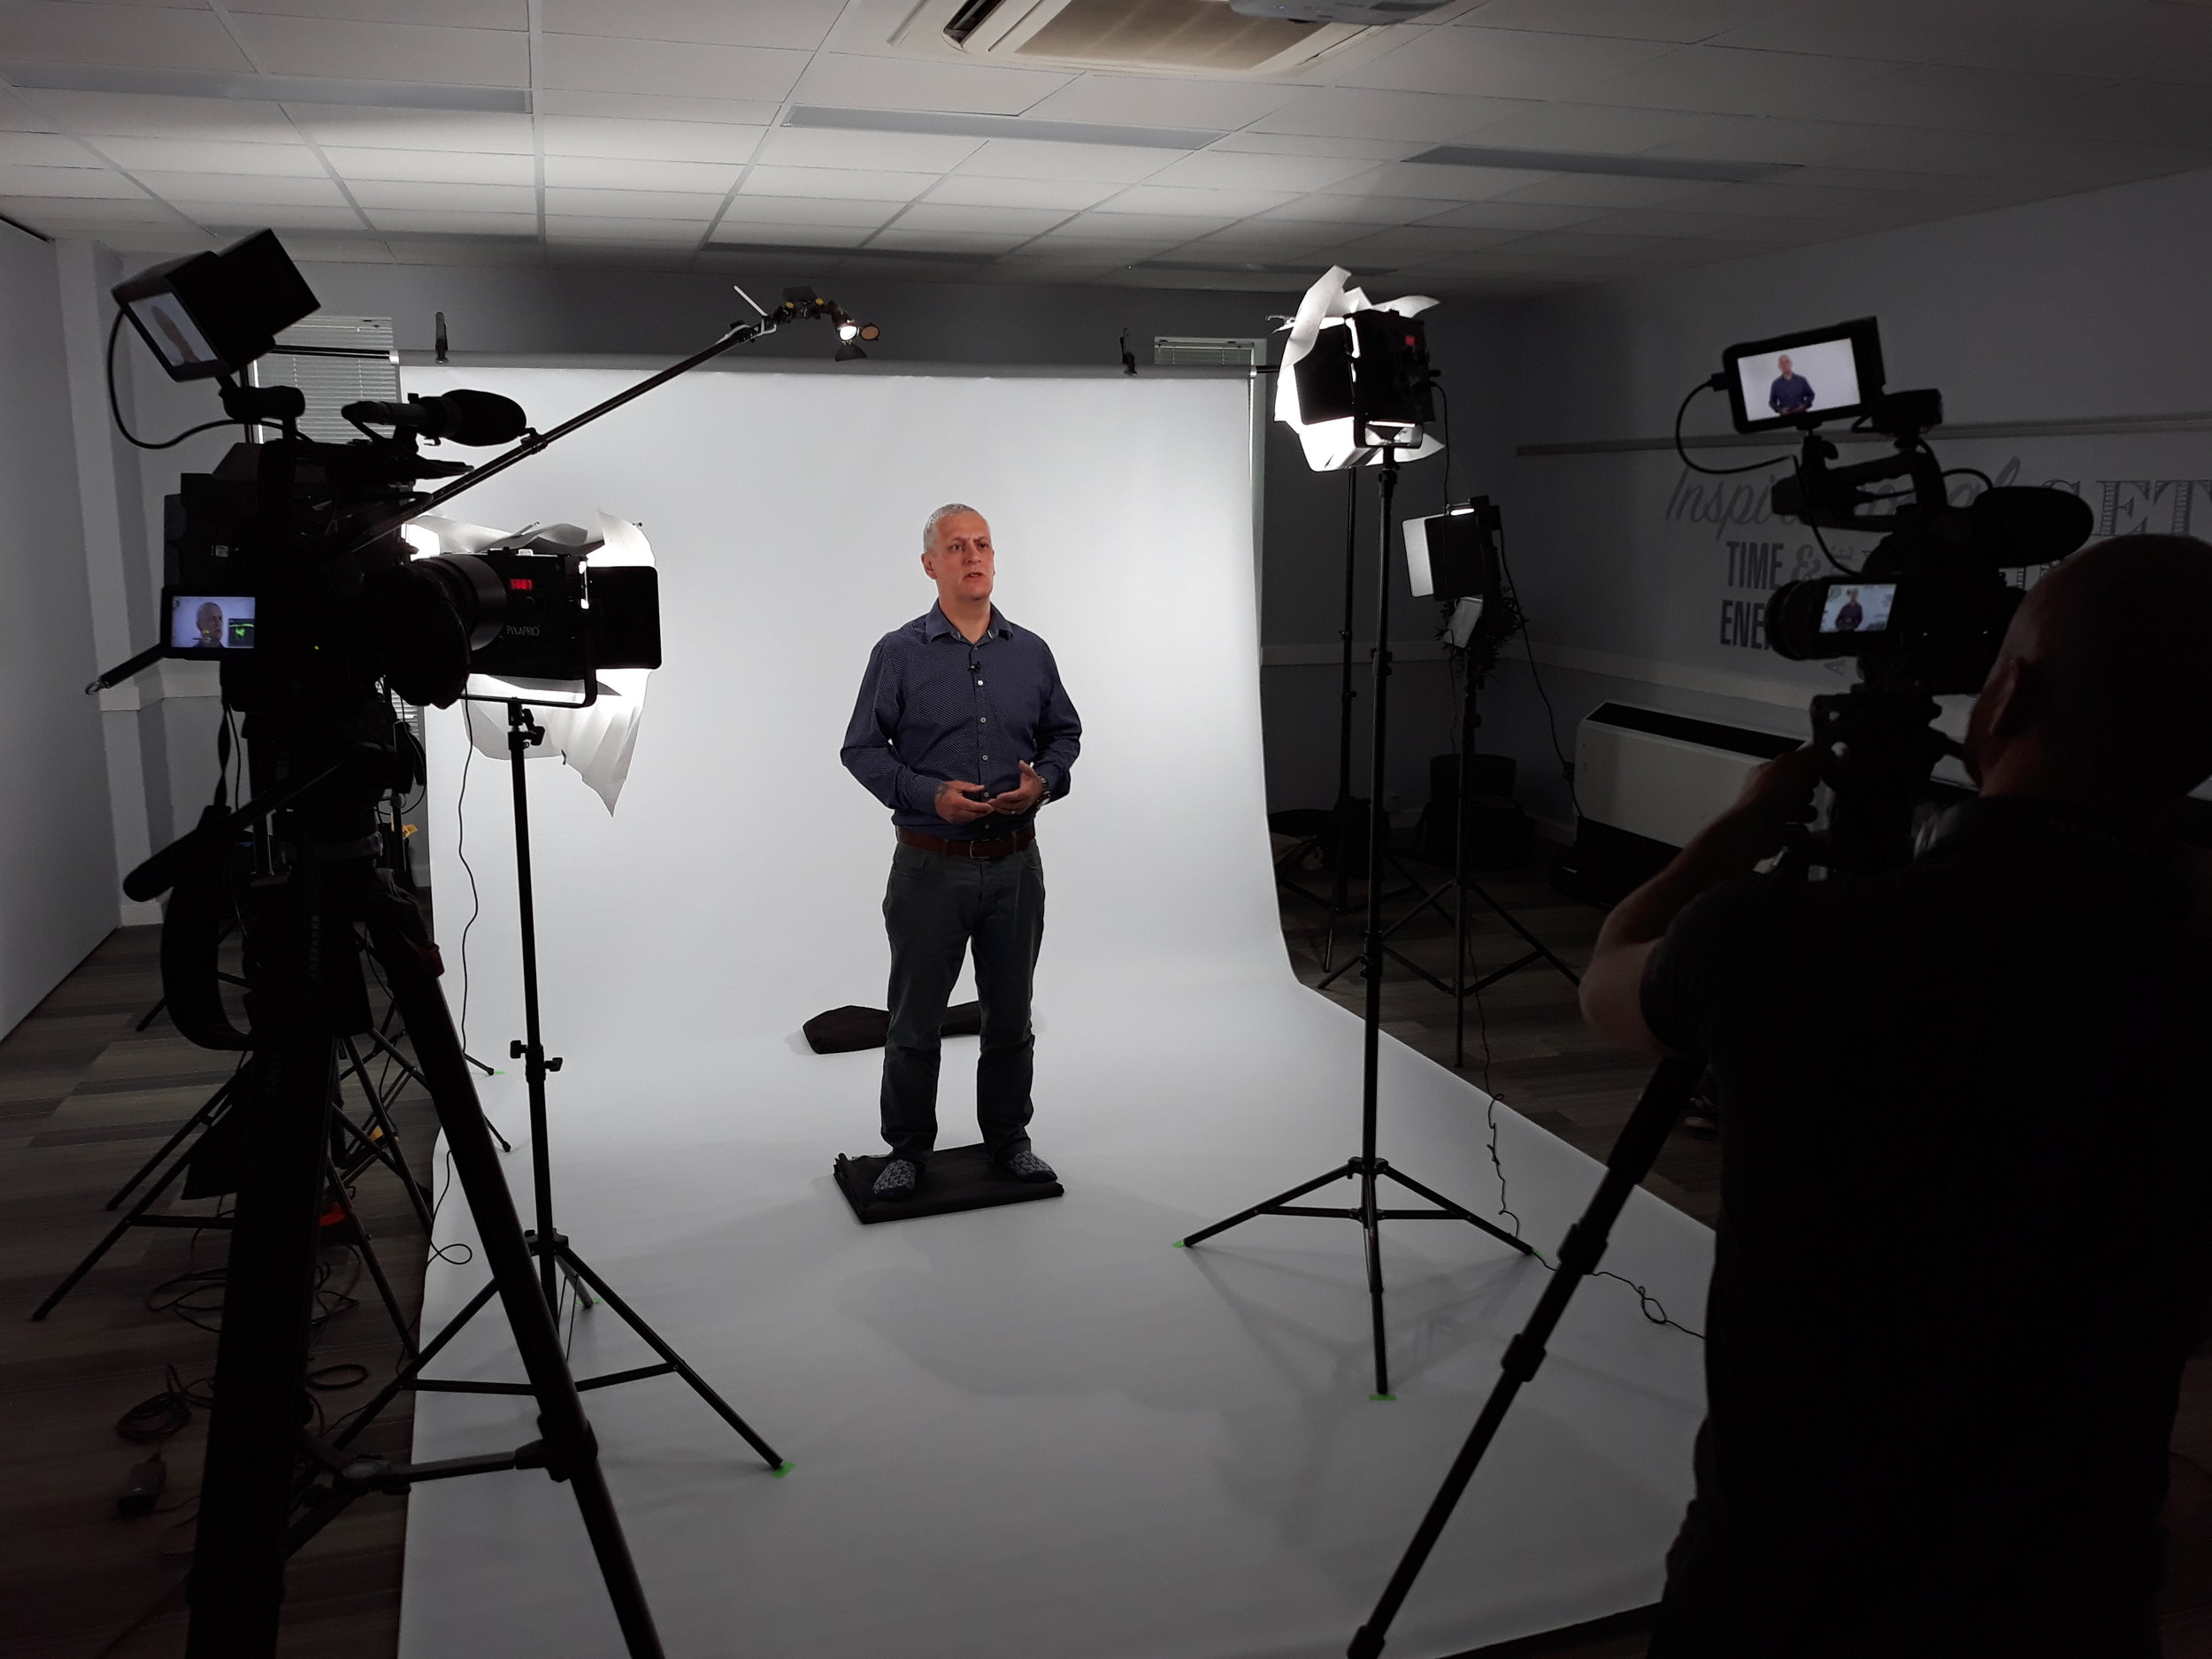 Our setup allowed for 2 cameras to shoot - one on a medium shot and the other on a close up. With  325productionsUK